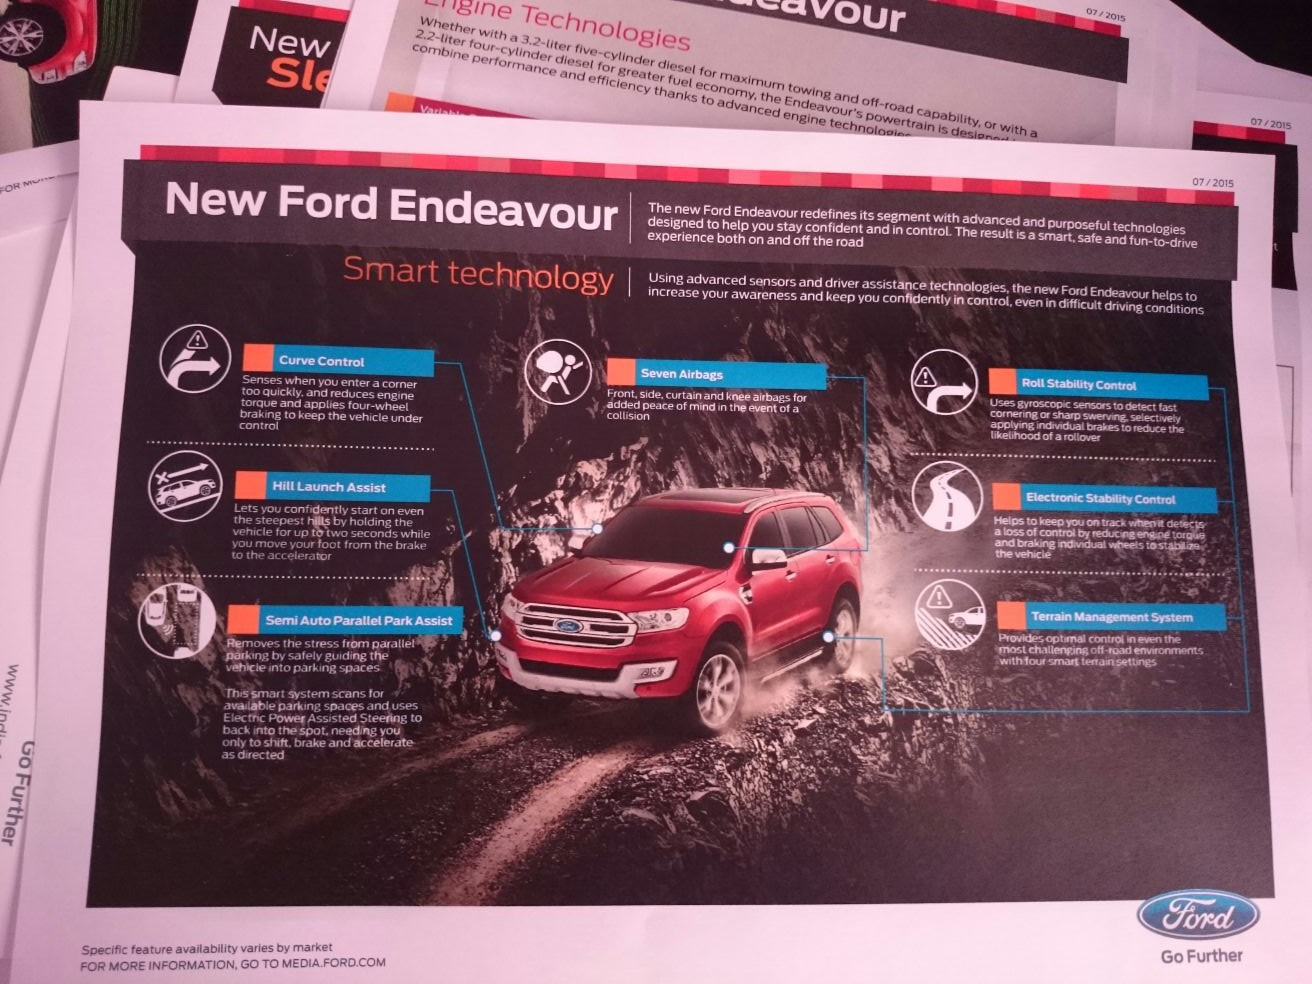 Ford Endeavour Safety features